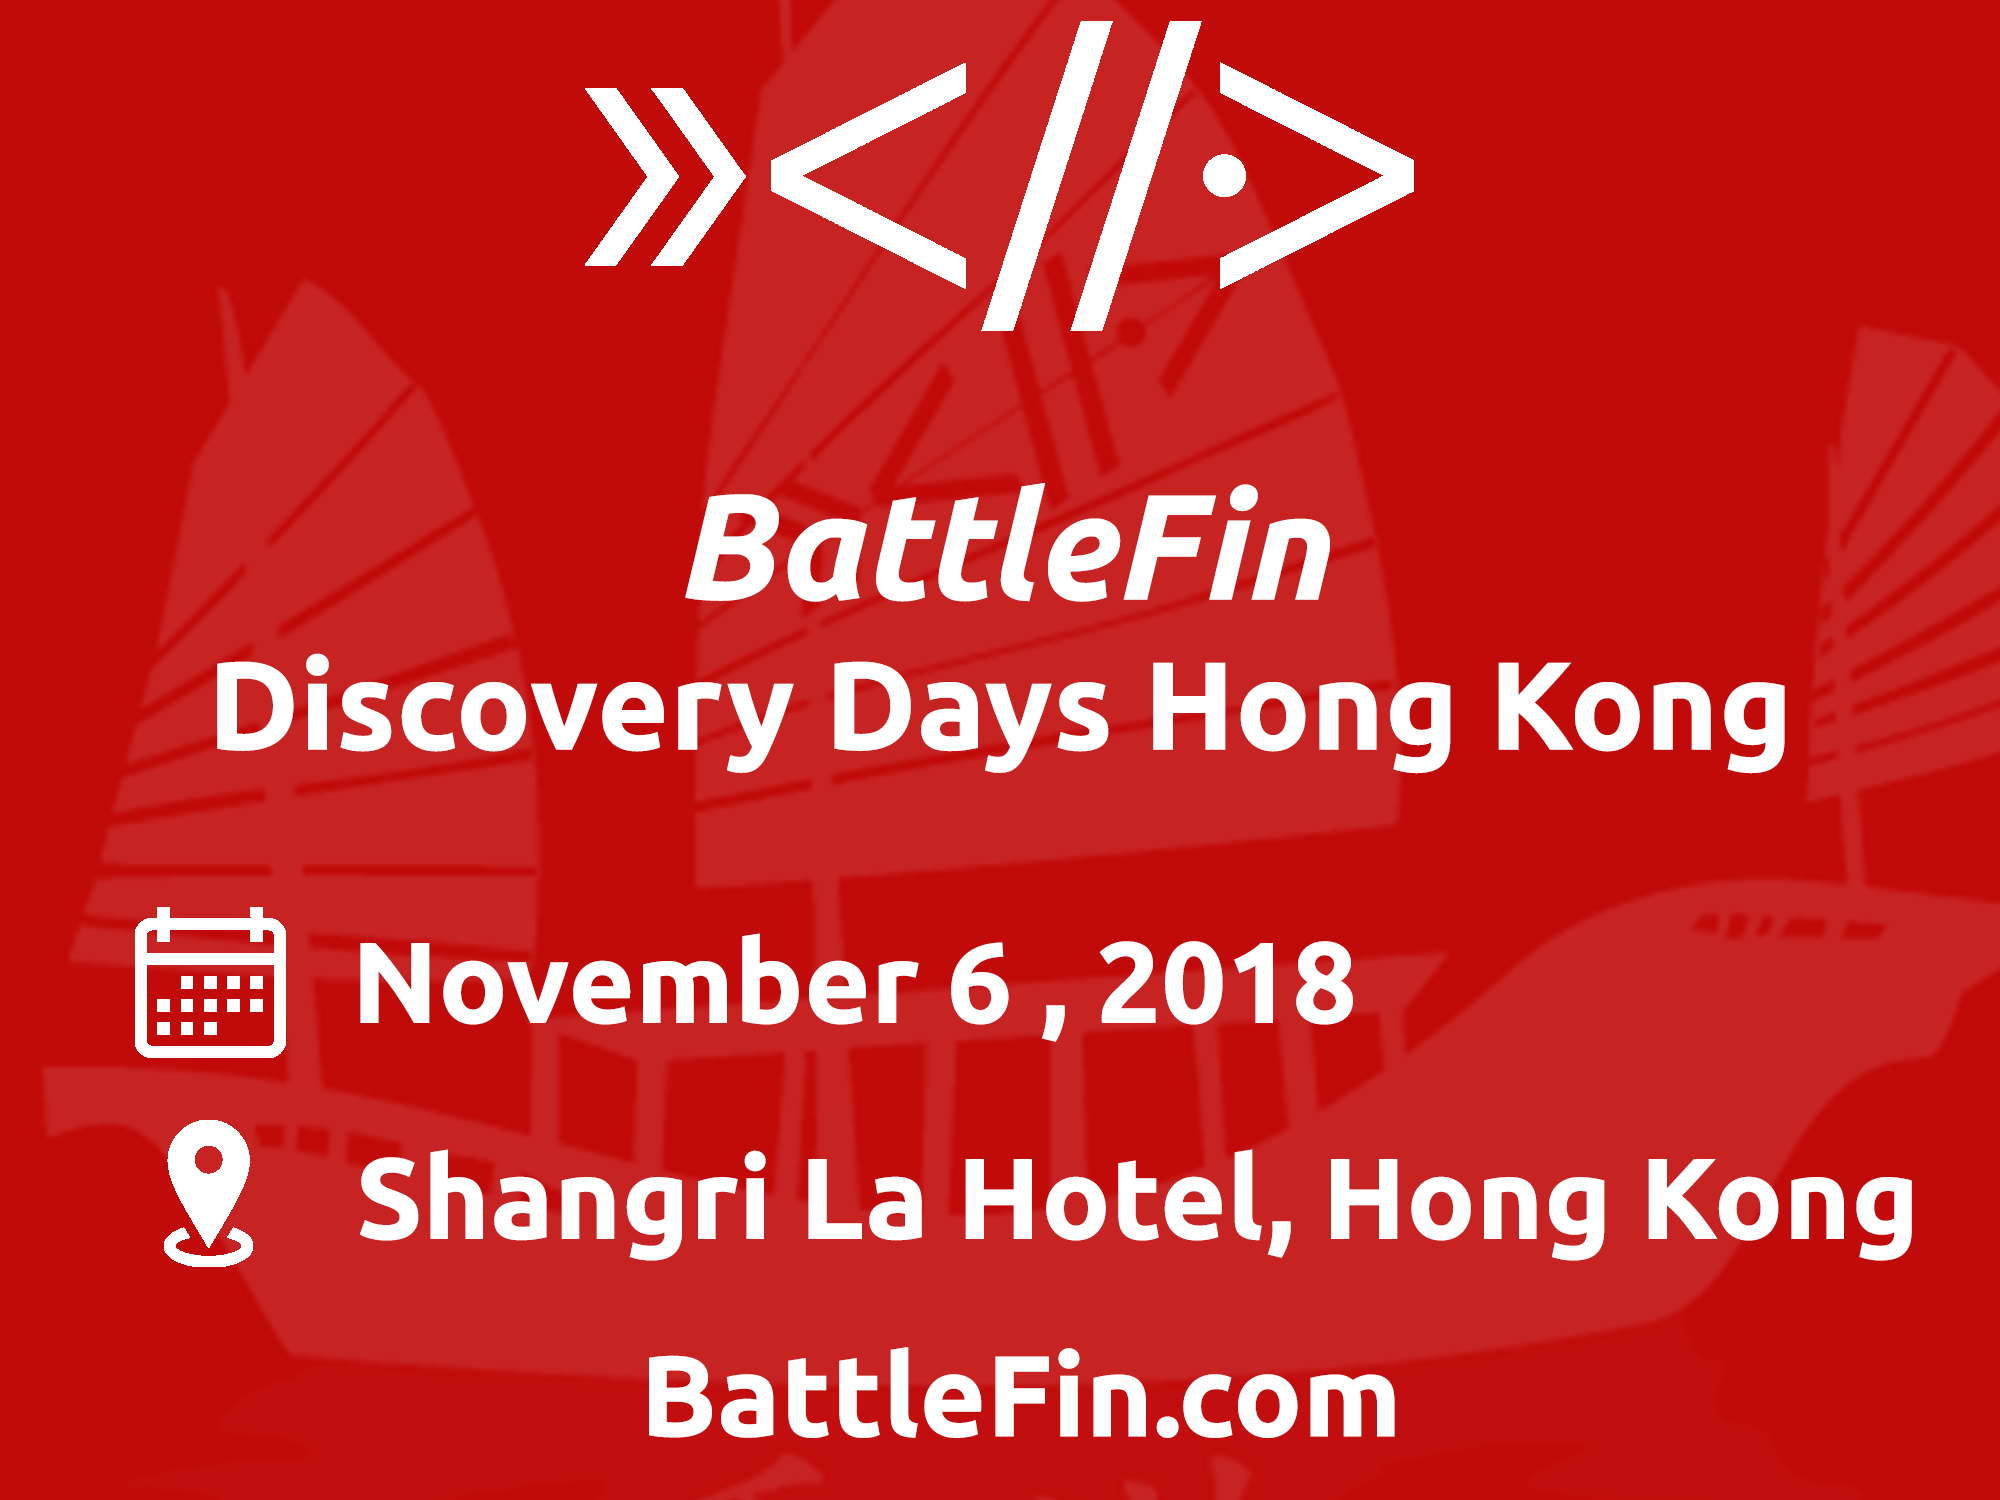 BattleFin Alternative Data Discovery Day Hong Kong 2018 organized by BattleFin